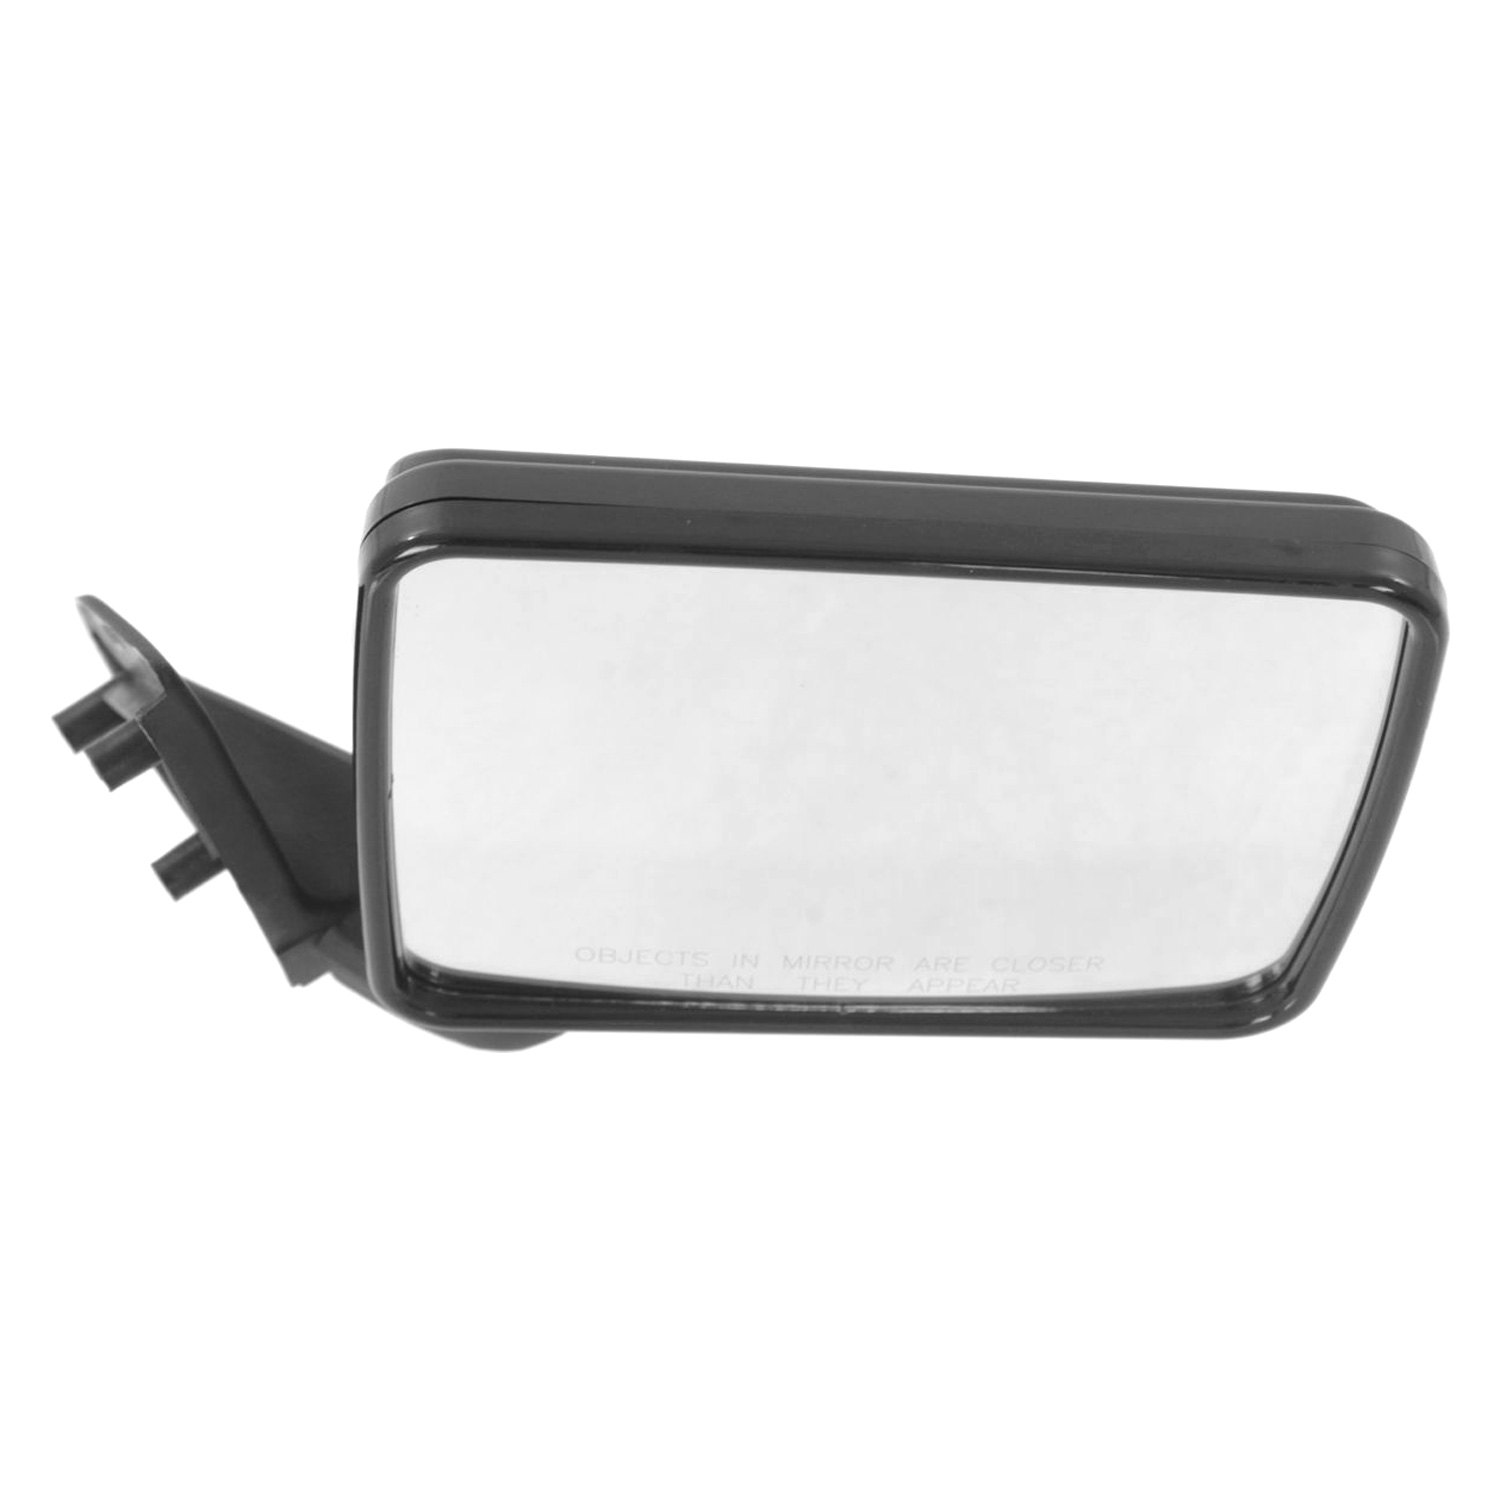 Dodge Ram 50 1993 Manual Side View Mirror